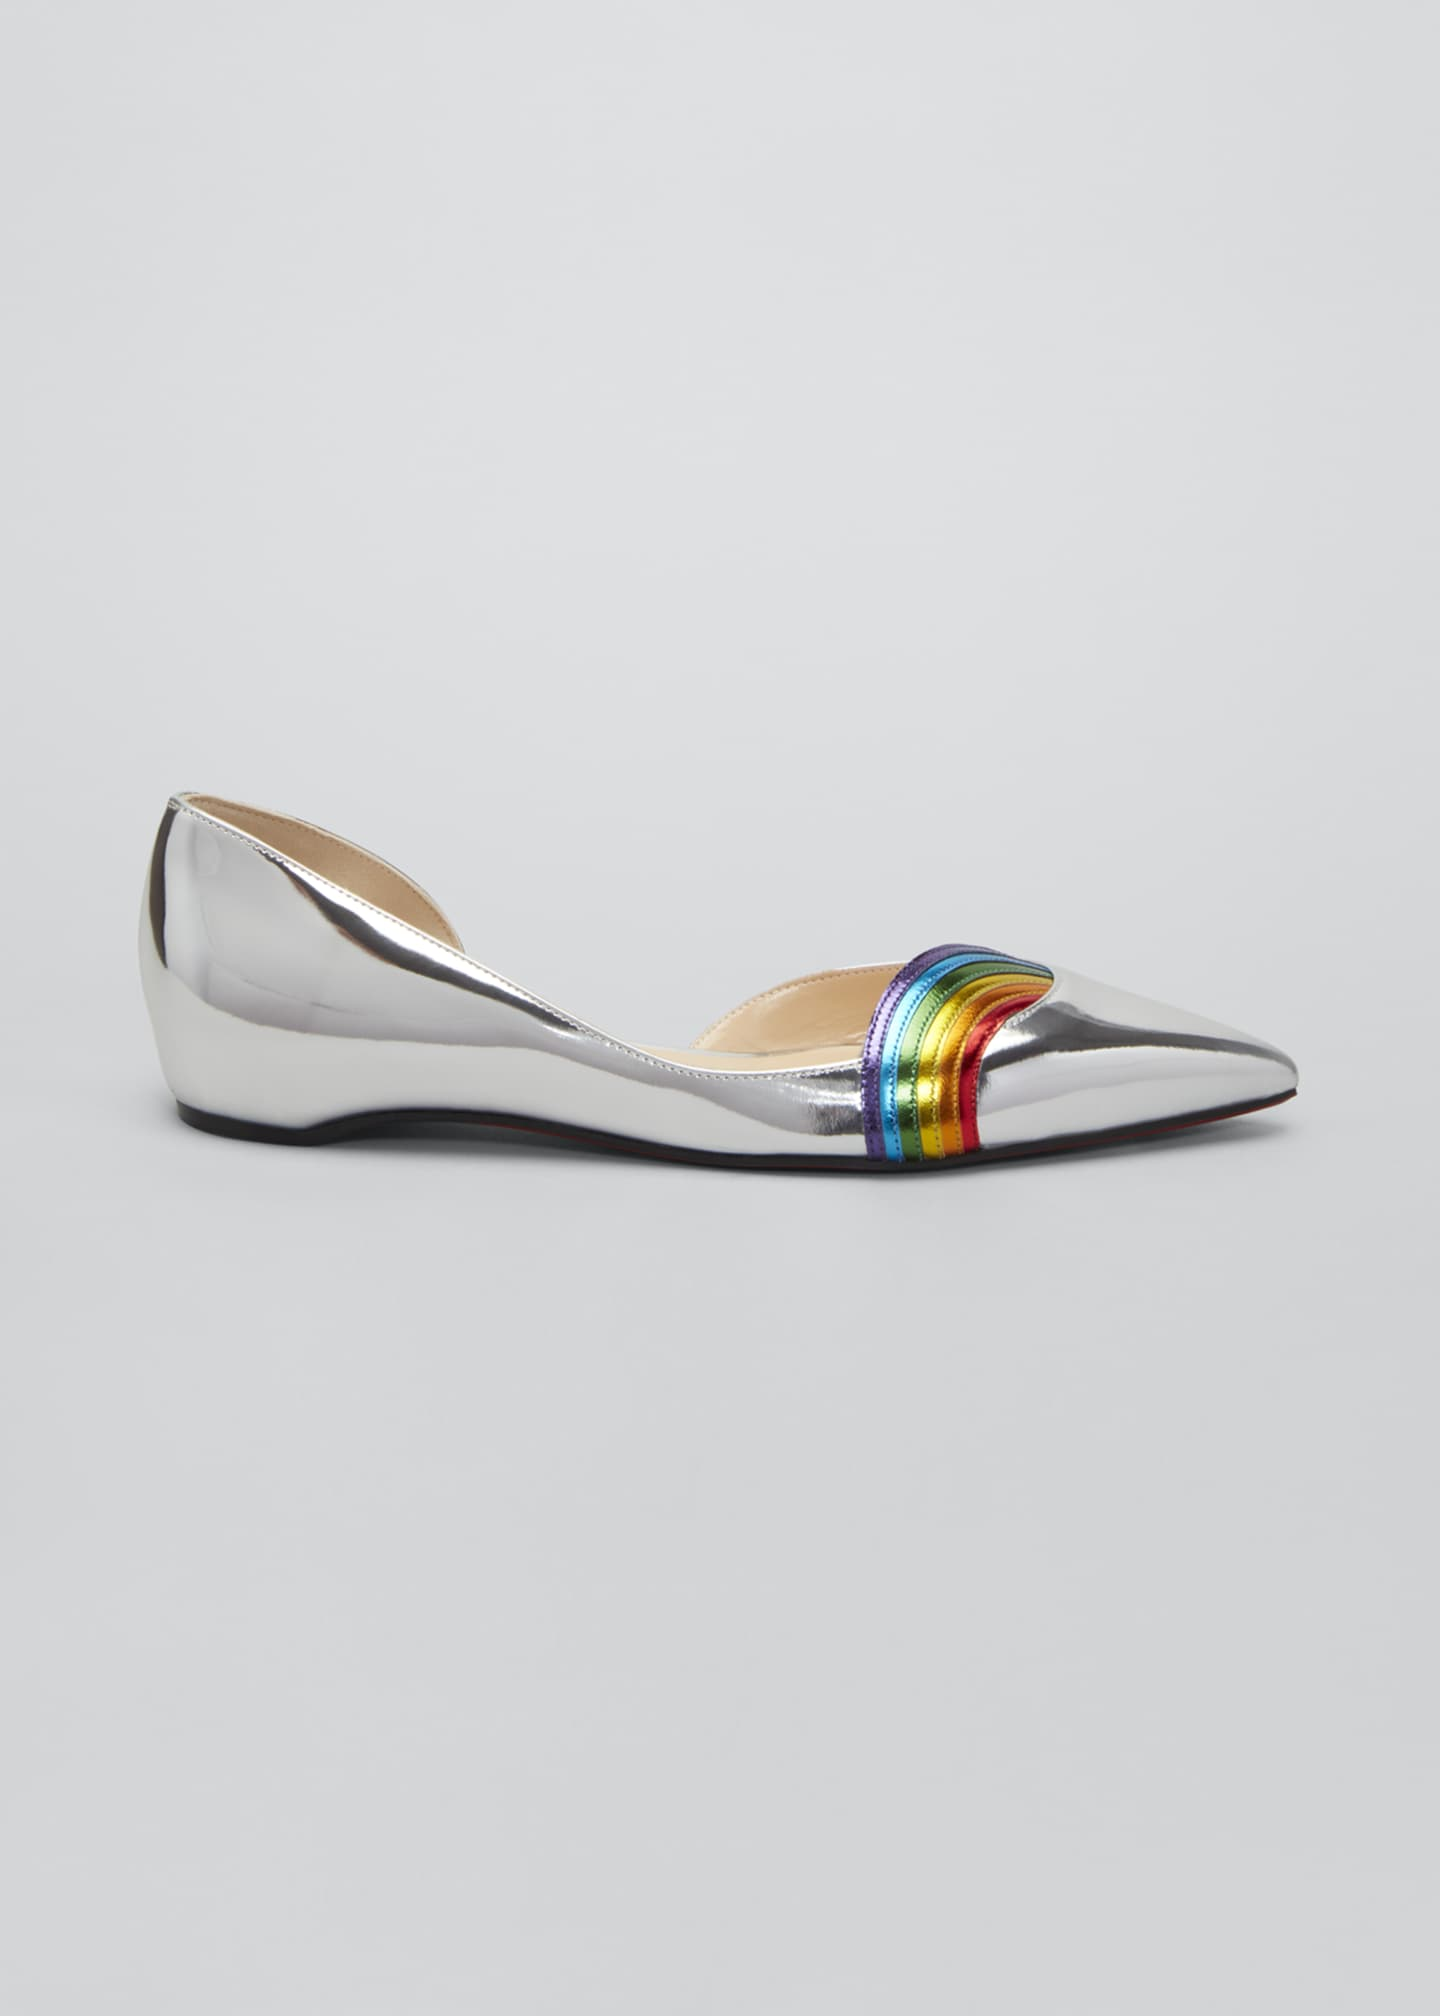 Image 1 of 3: Arkenpump Metallic Rainbow Red Sole Flats